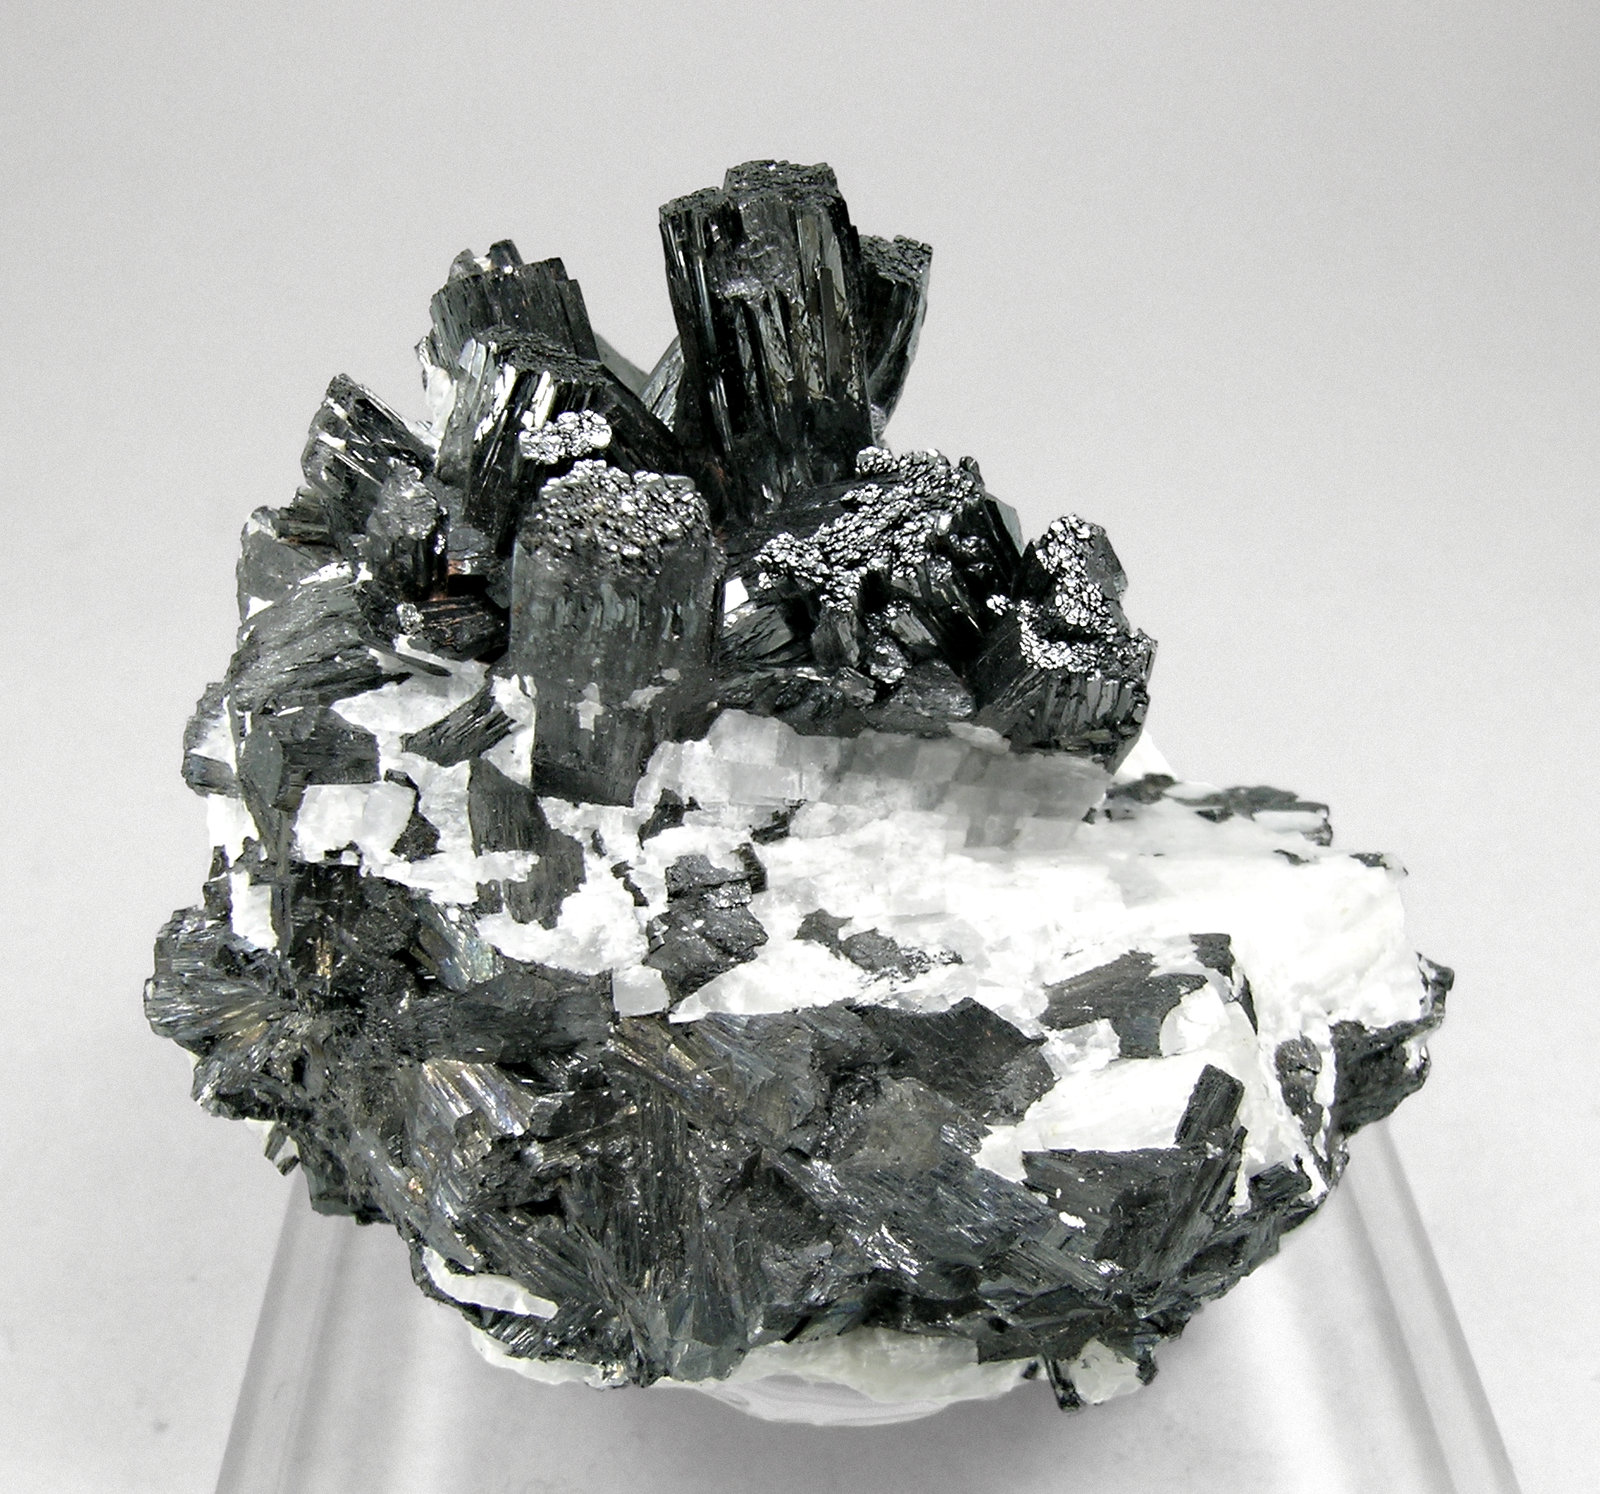 specimens/s_imagesM6/Manganite-AE98M6f.jpg